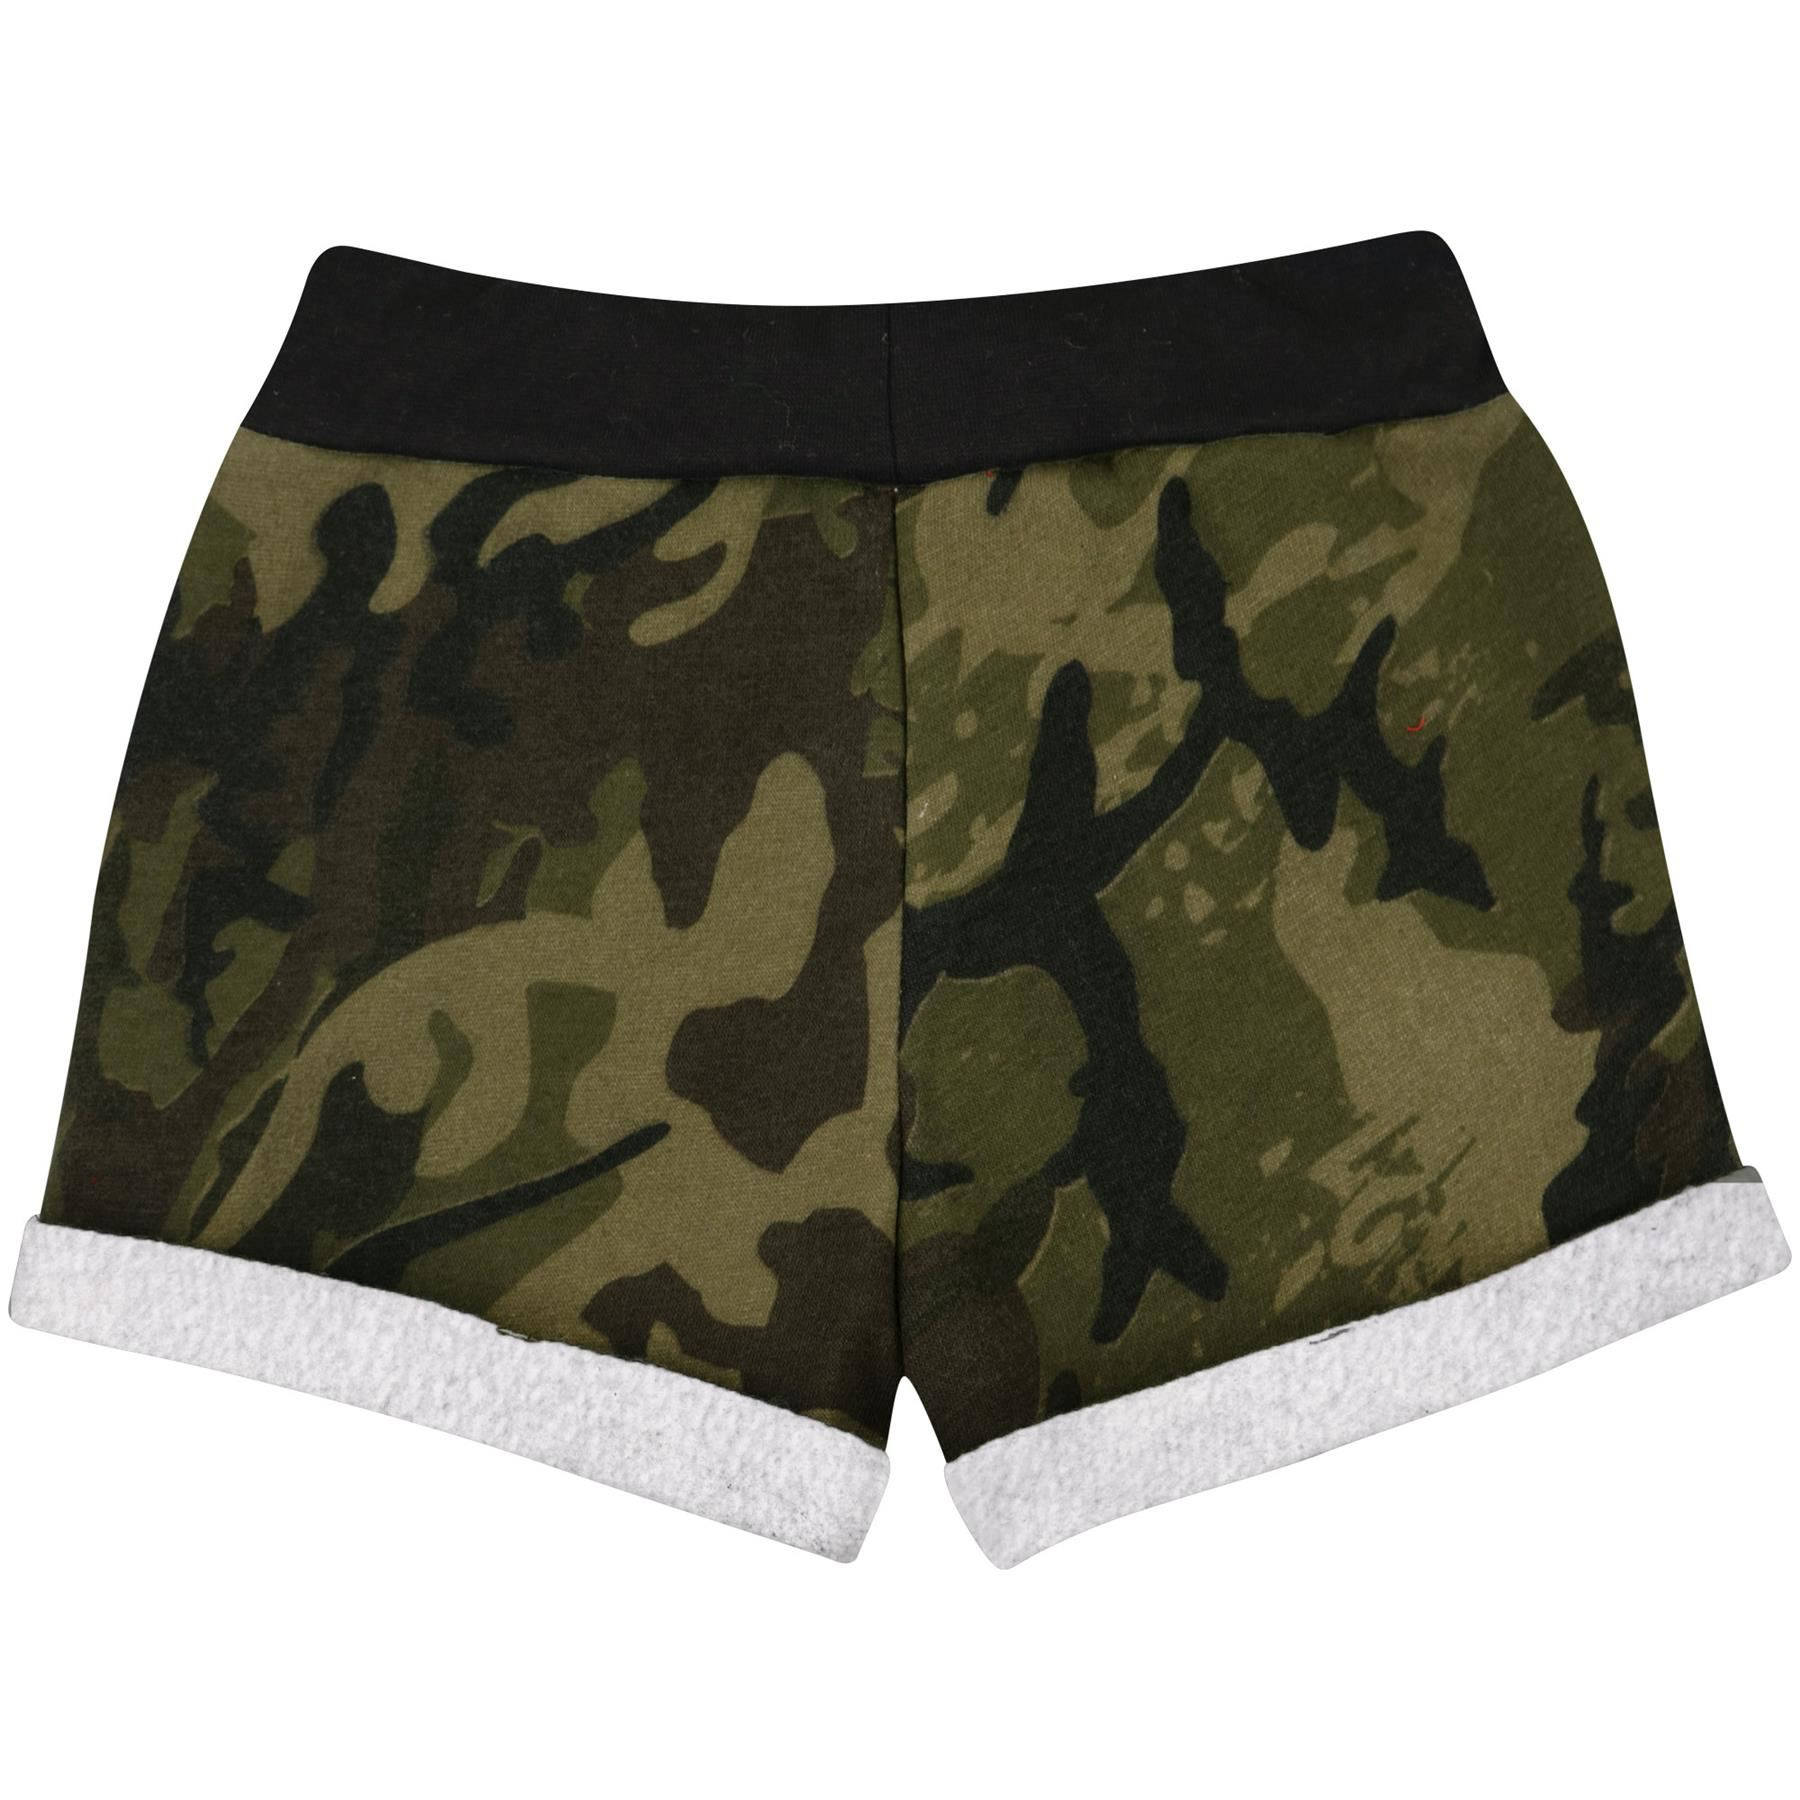 A2Z 4 Kids Kids Girls Cycling Shorts Printed Gym Dance Running Trendy Fashion Summer Short Knee Length Half Pant New Age 7 8 9 10 11 12 13 Years